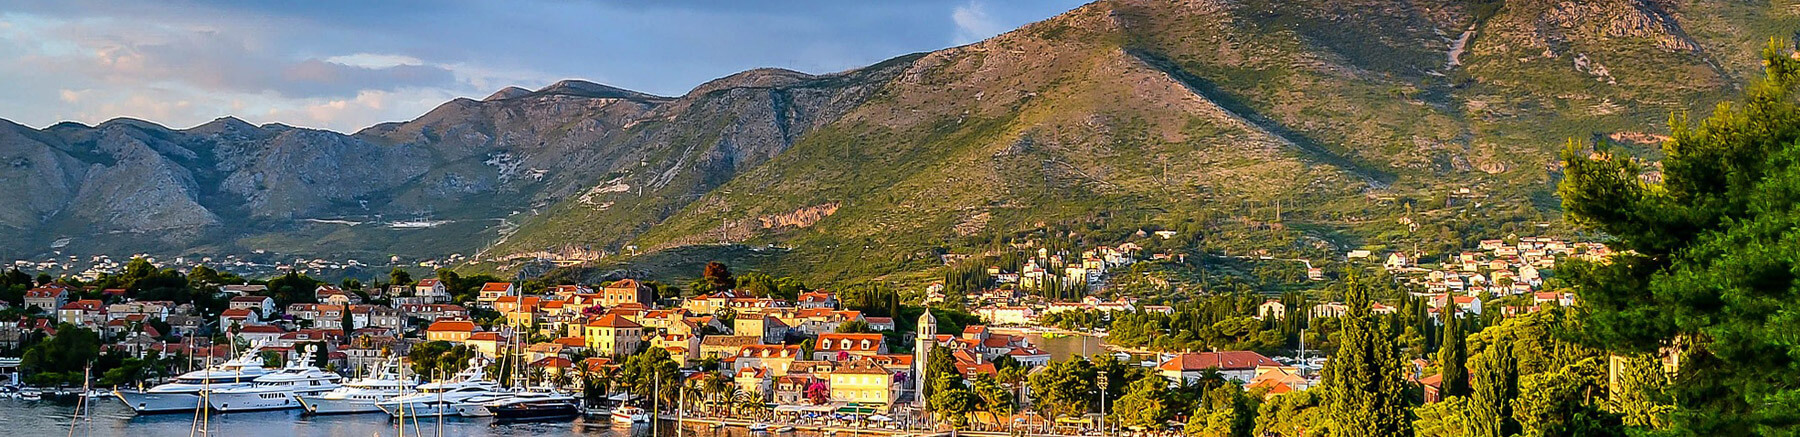 Coastal city of Montenegro with the mountains in the background